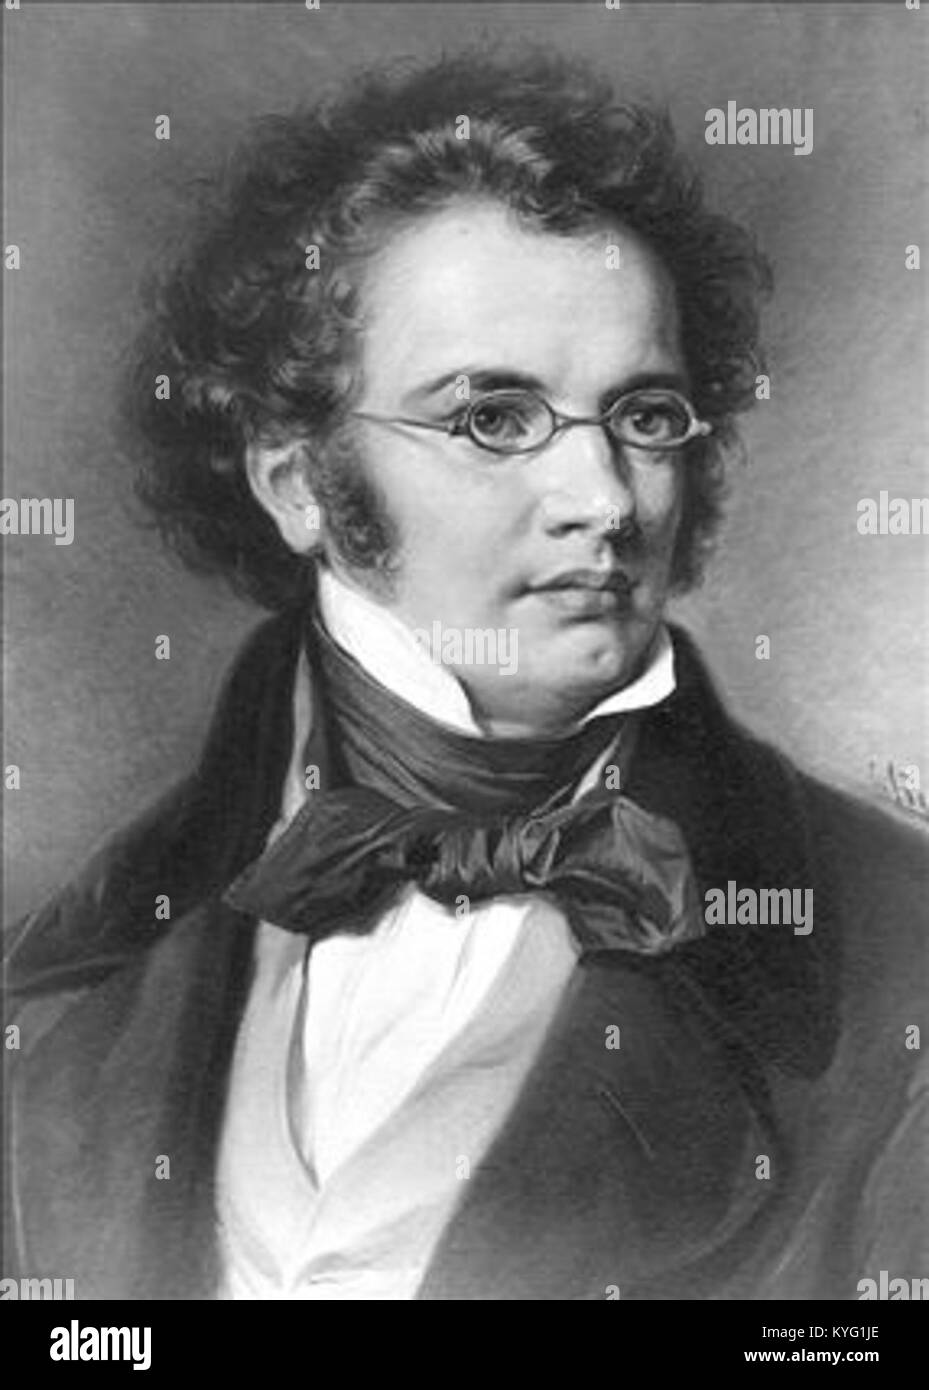 the life of franz schubert The life of franz schubert it was the best of times even though he was fired, this was probably one of the highest points in his career so far, vogl was performing his songs, his friends got some of his songs published and he even had parties dedicated to him called schubertiaden.